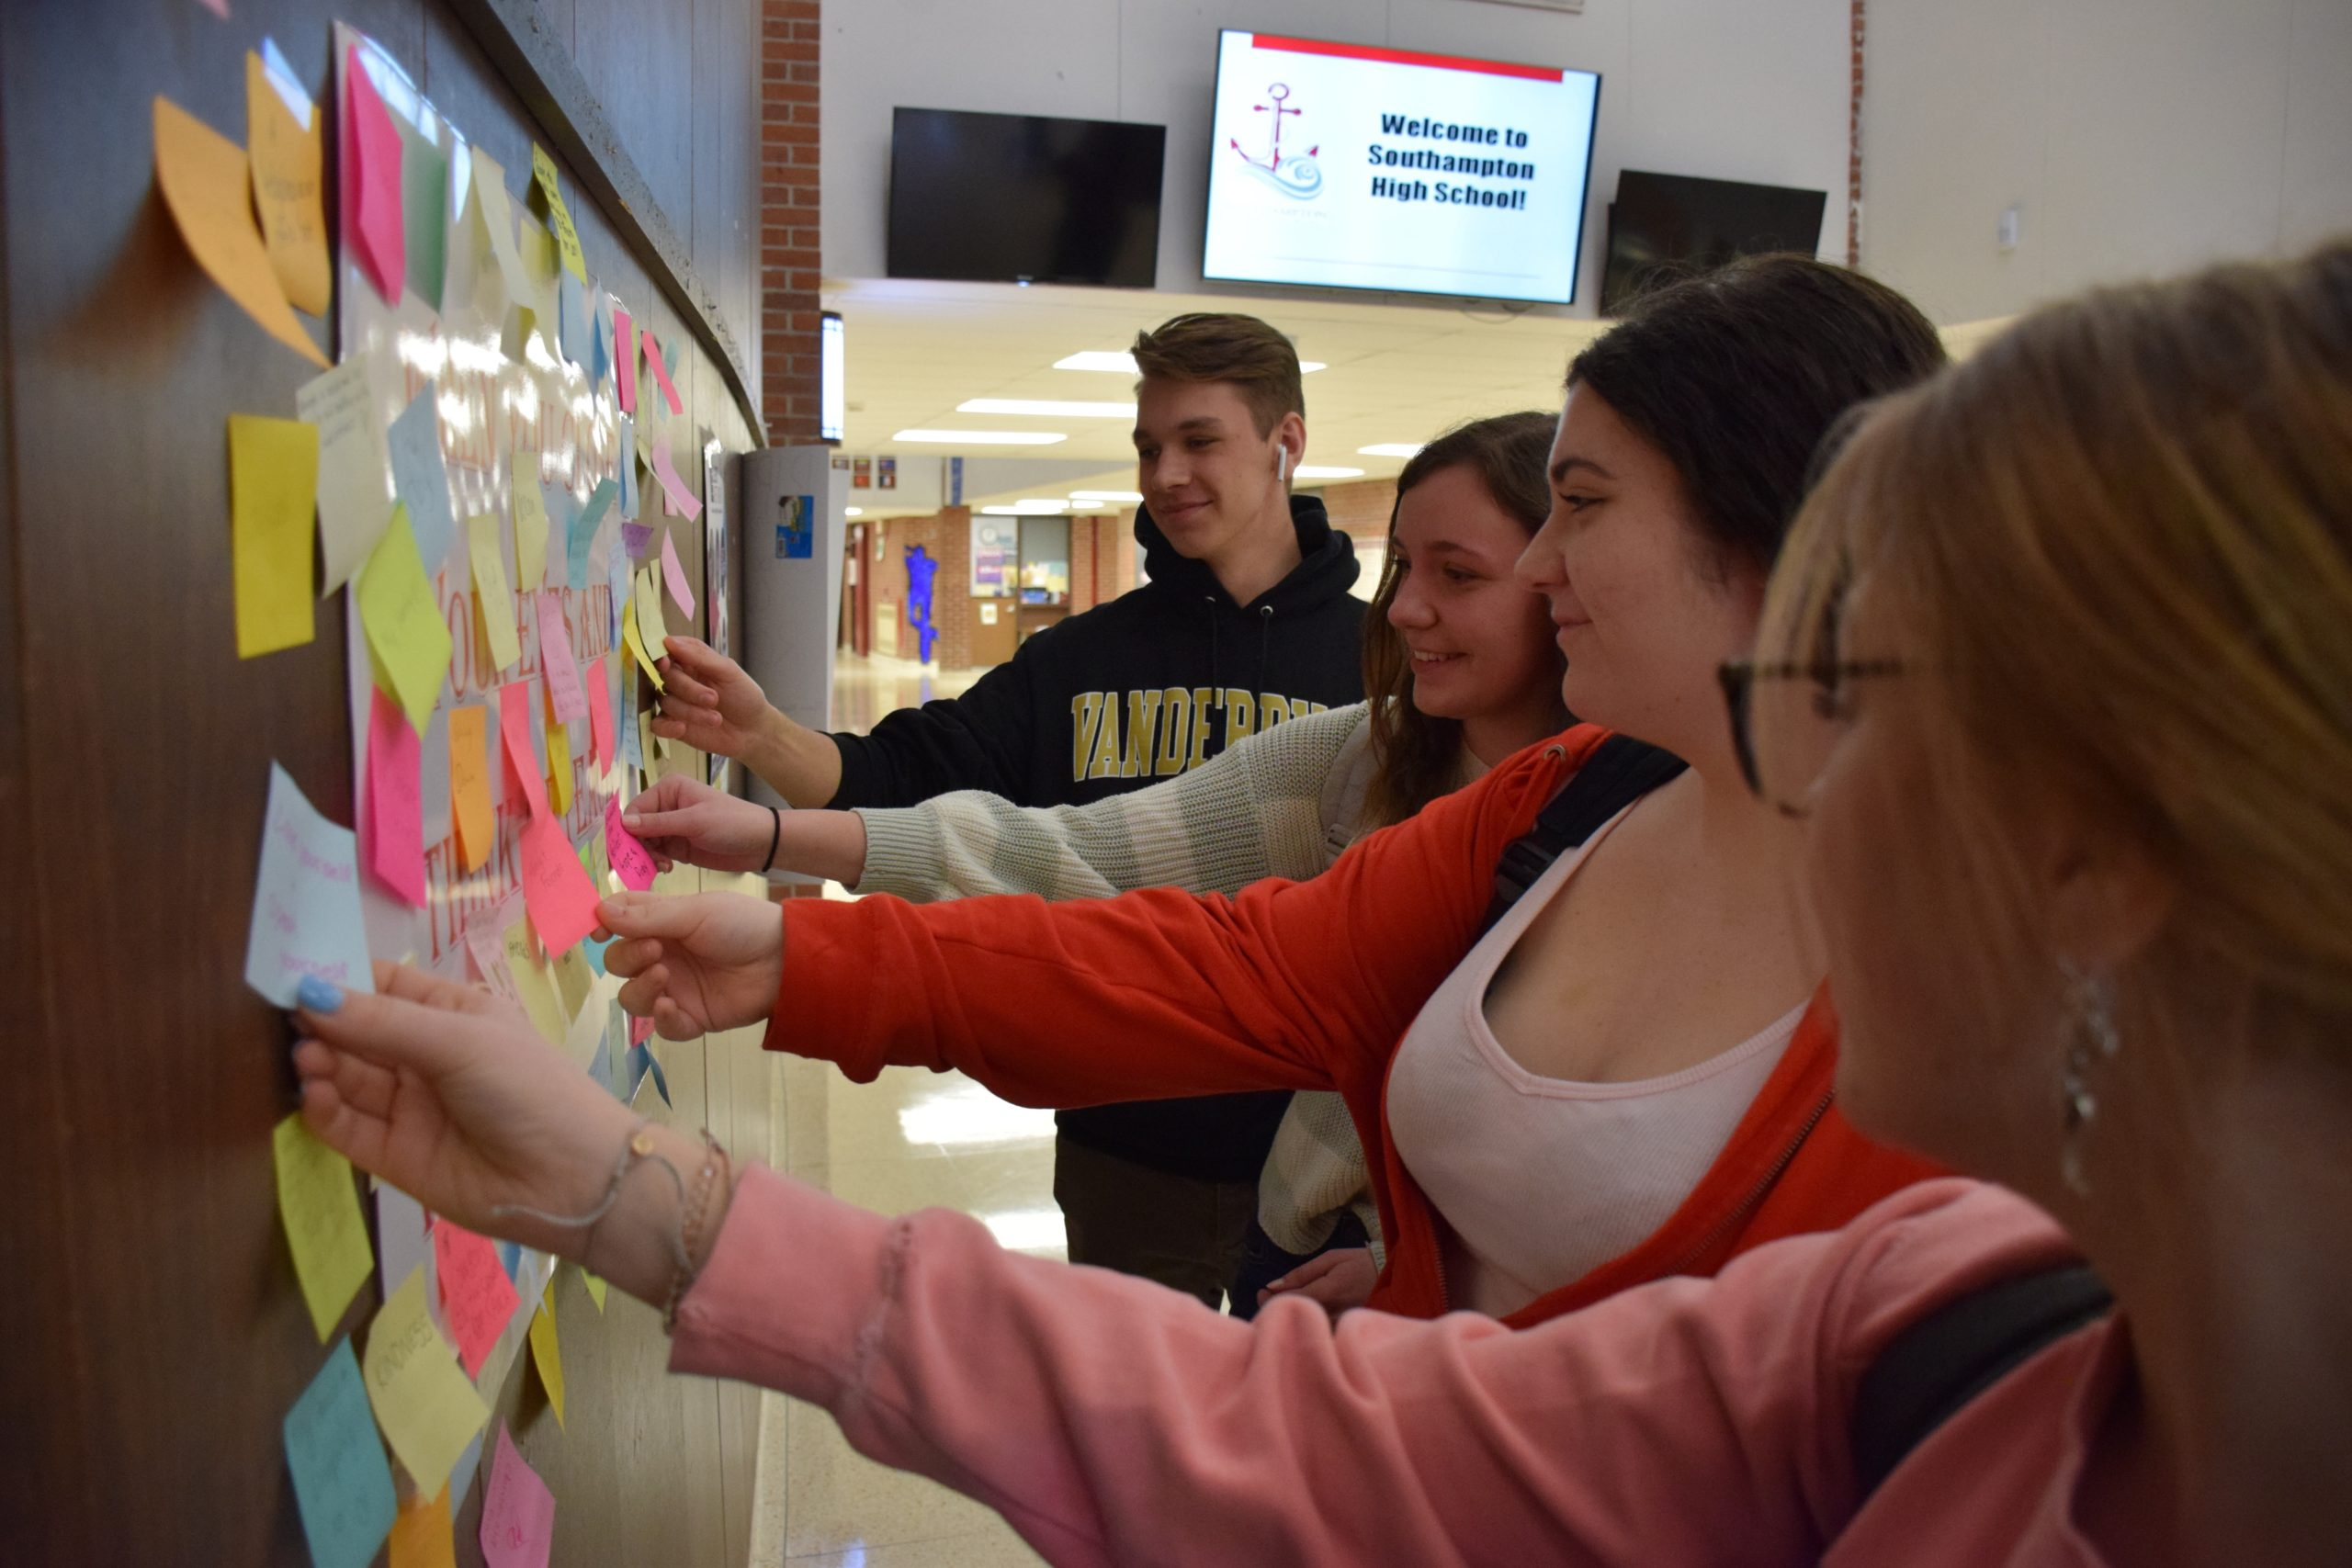 To mark Black History Month, Southampton High School students were encouraged to write messages of peace on Post-it notes and share them on a display in the school's main lobby. Students wrote powerful words about the importance of peace and what it means to them.